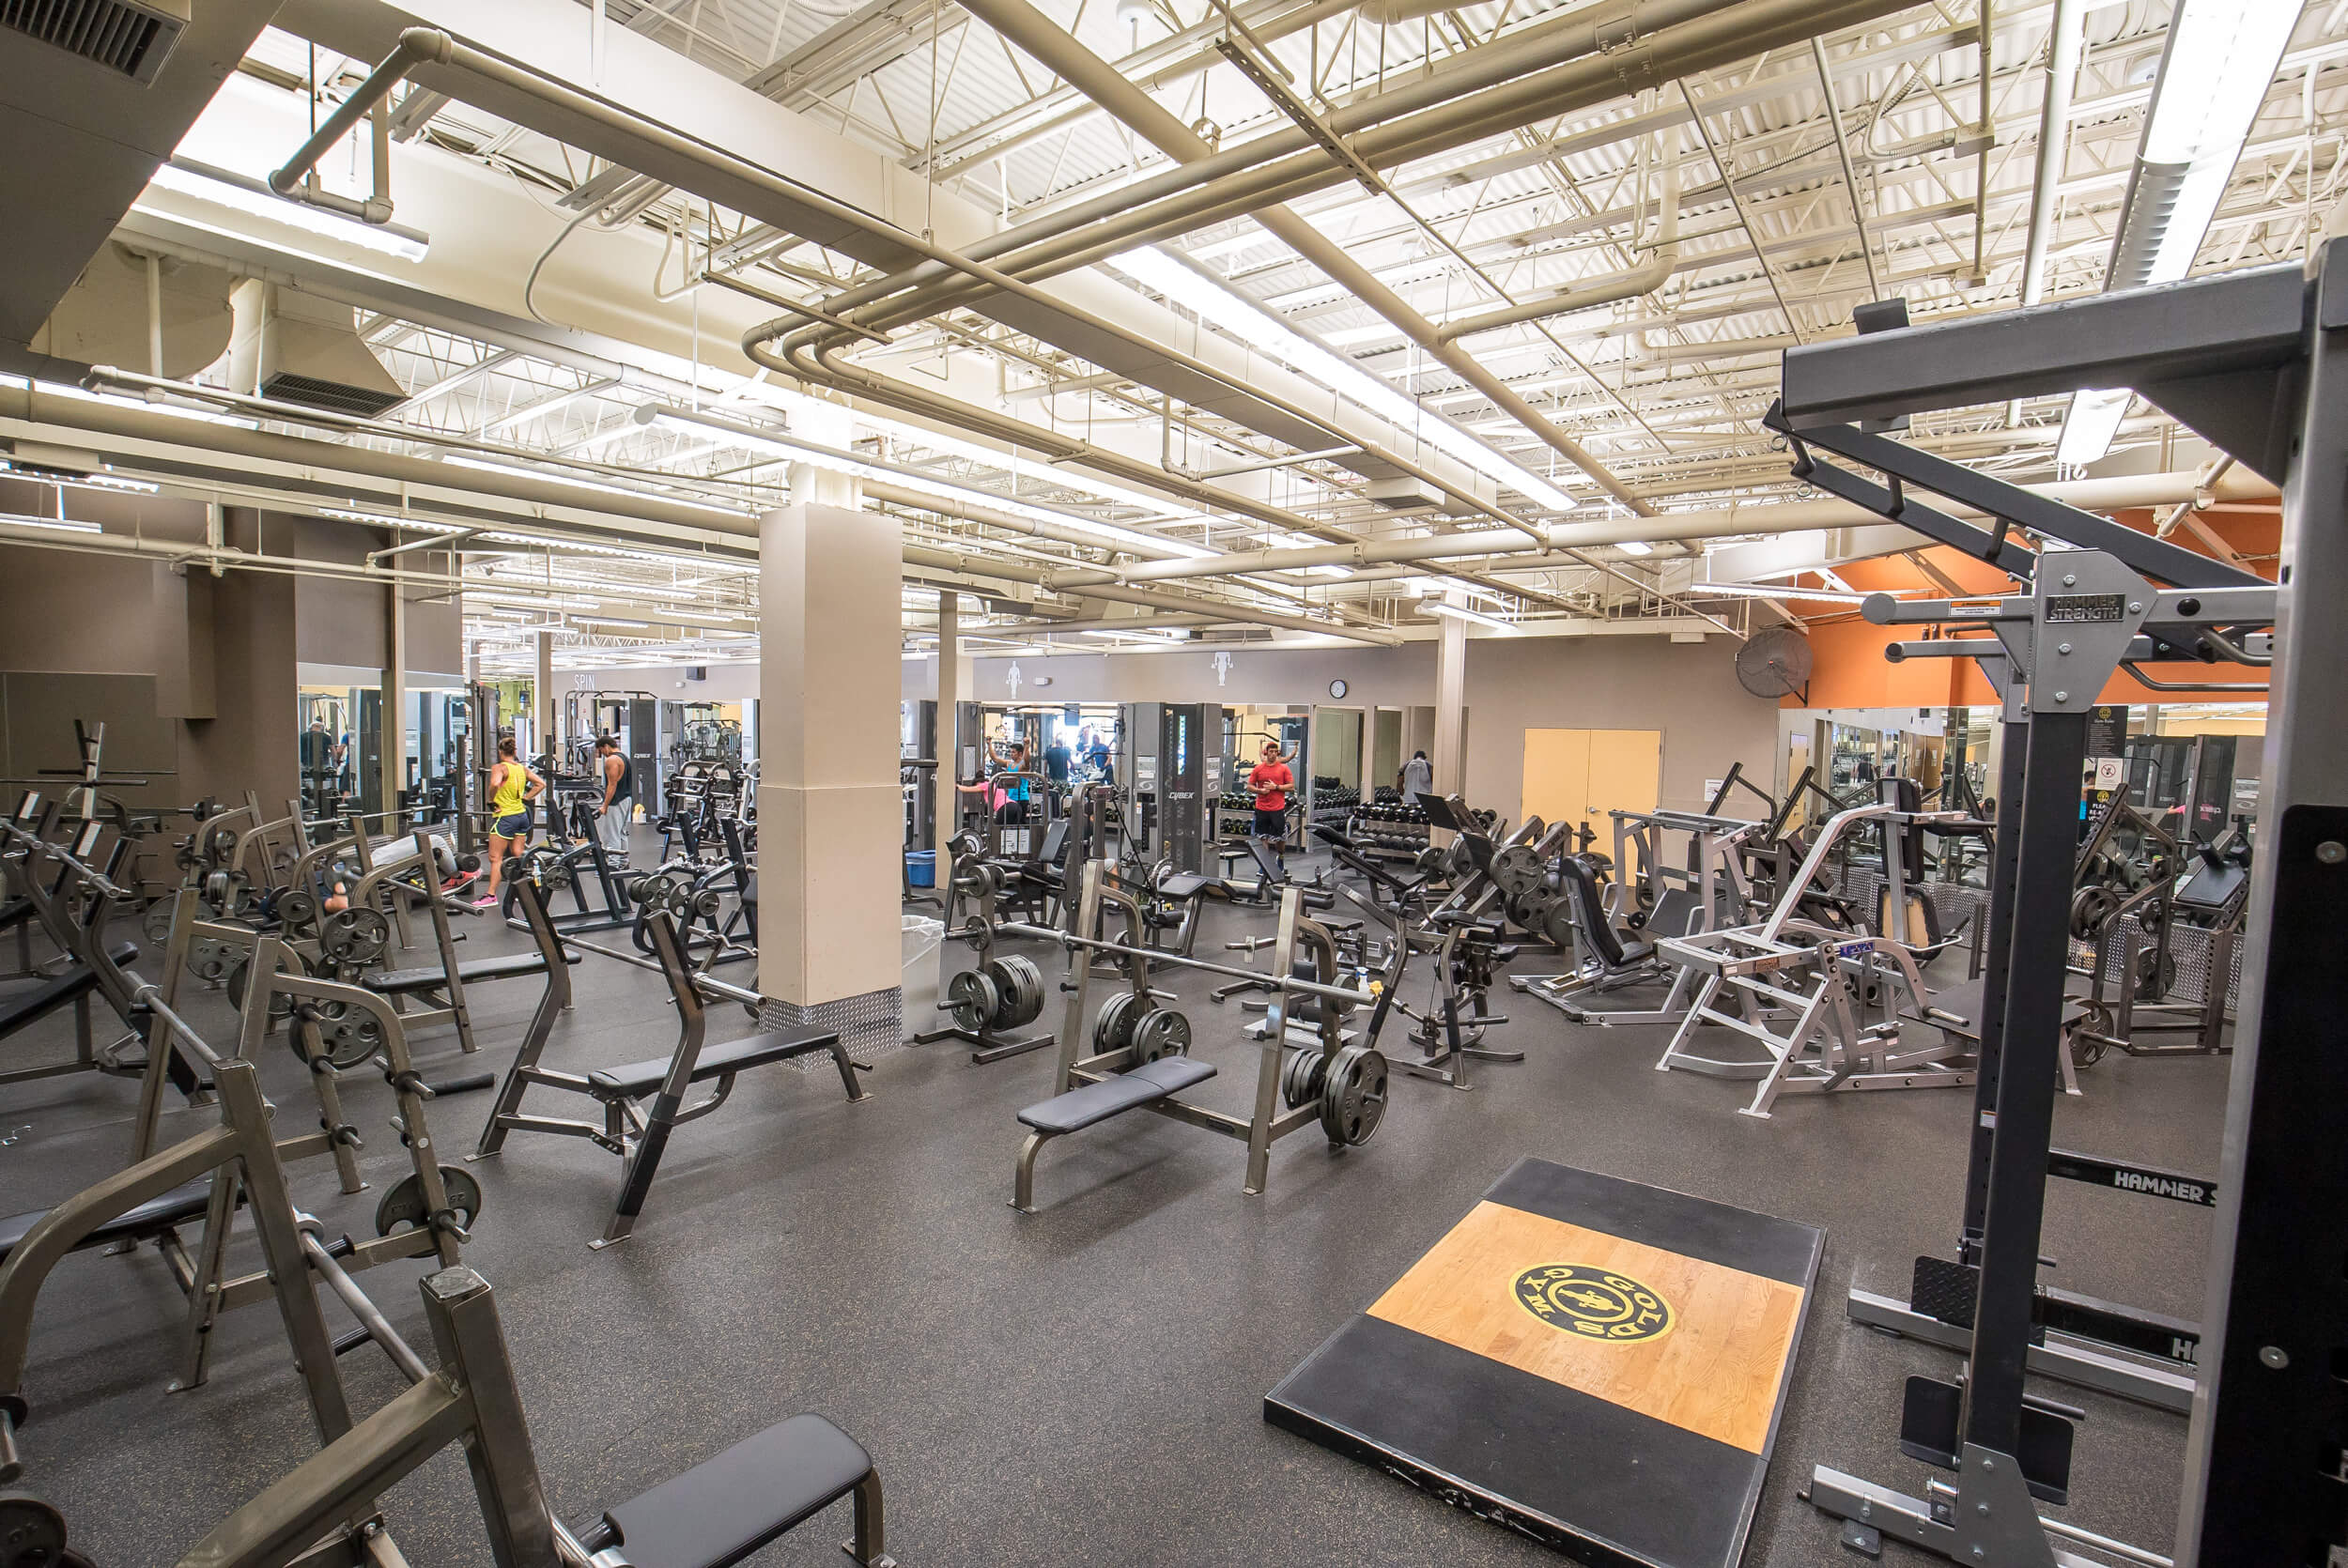 Gold's Gym Richmond located at 8904 West Broad Street